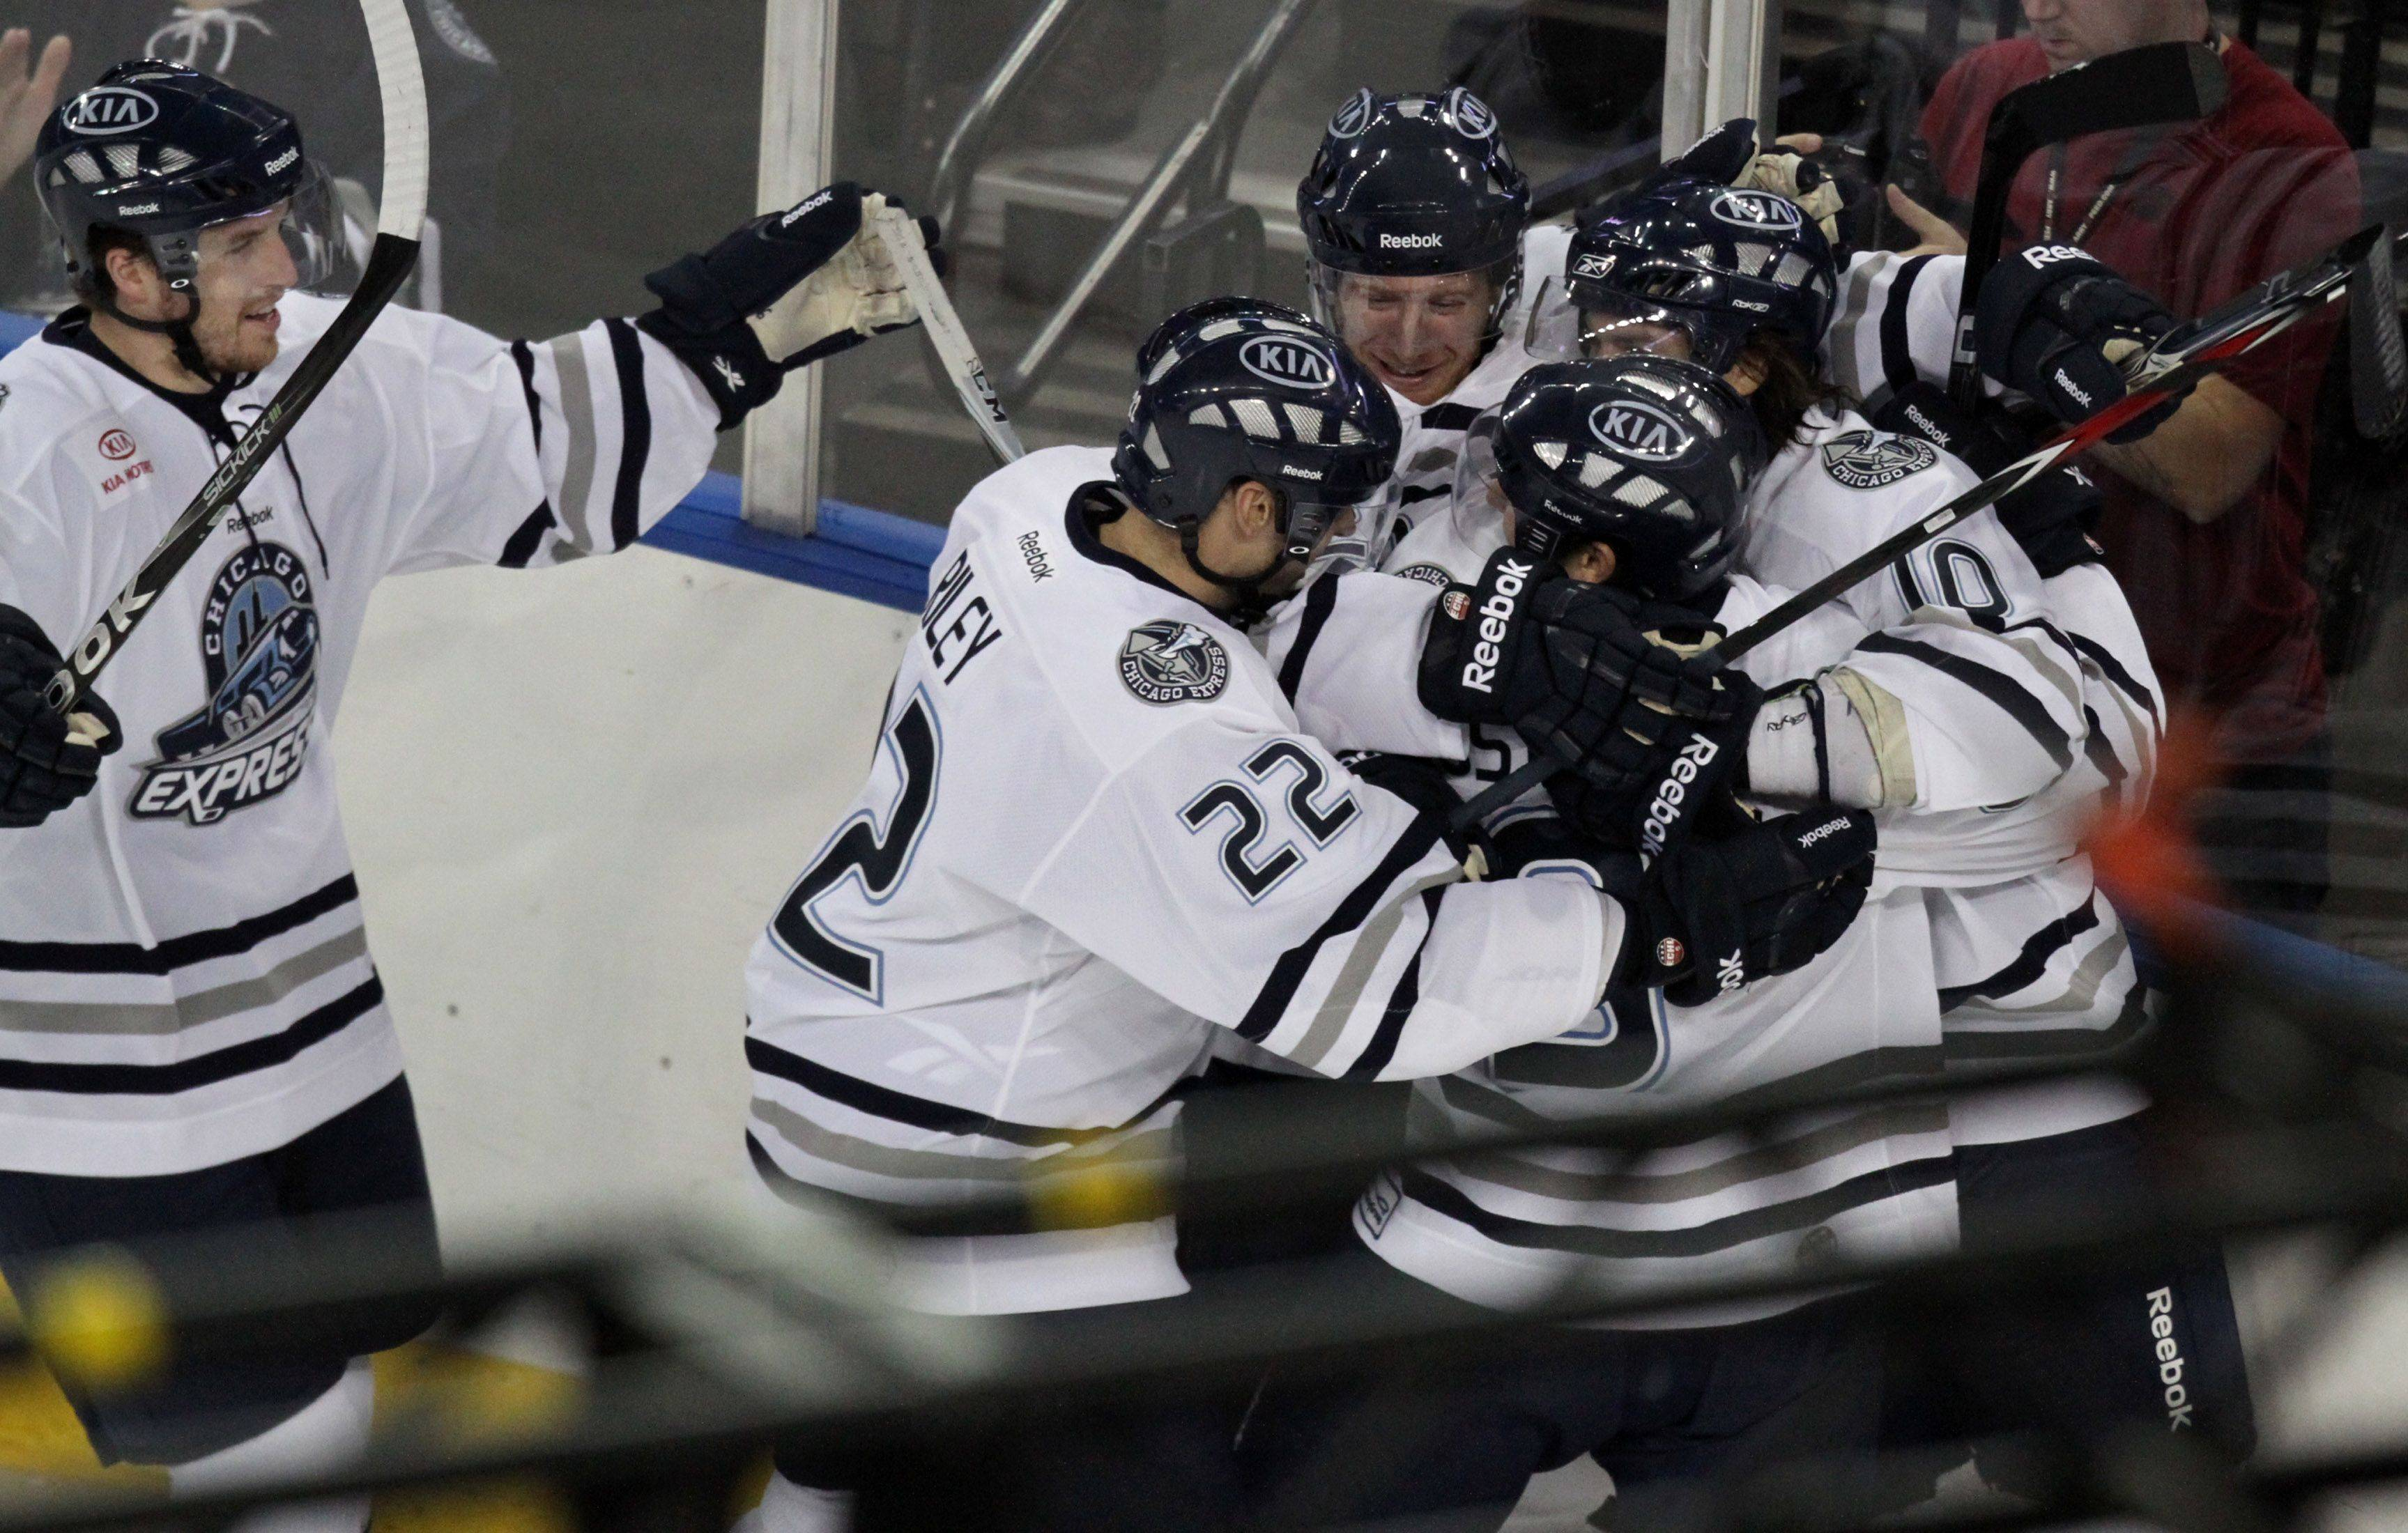 Chicago Express forward Kyle Lehman, right center, is mobbed by teammates after scoring a goal at 19:22 in the first period in home opener against Kalamazoo Wings at the Sears Centre in Hoffman Estates on Saturday, October 22nd.